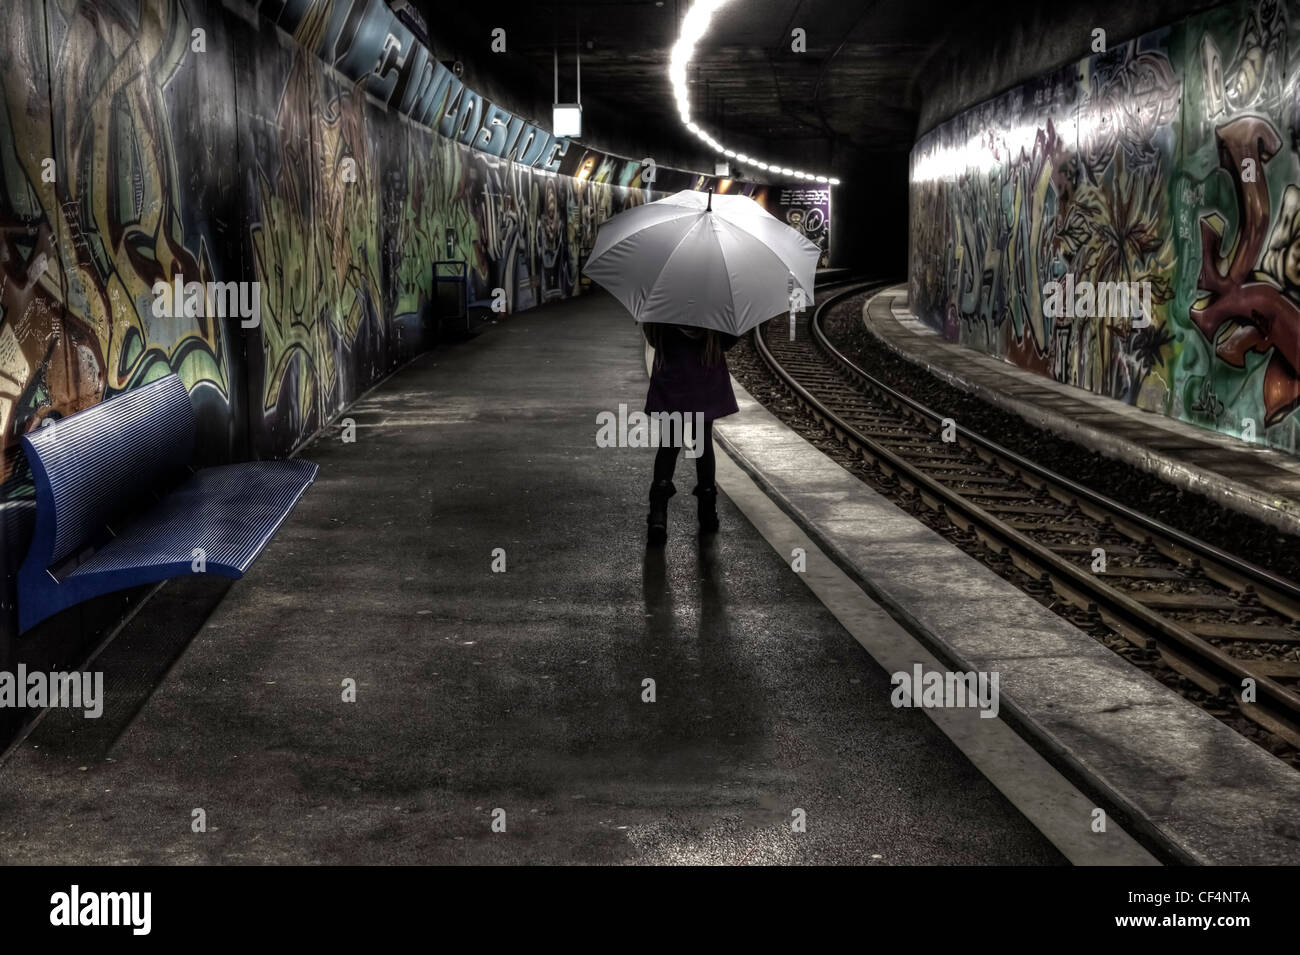 Girl with umbrella stands on a platform at a subway station with graffiti and waits. - Stock Image